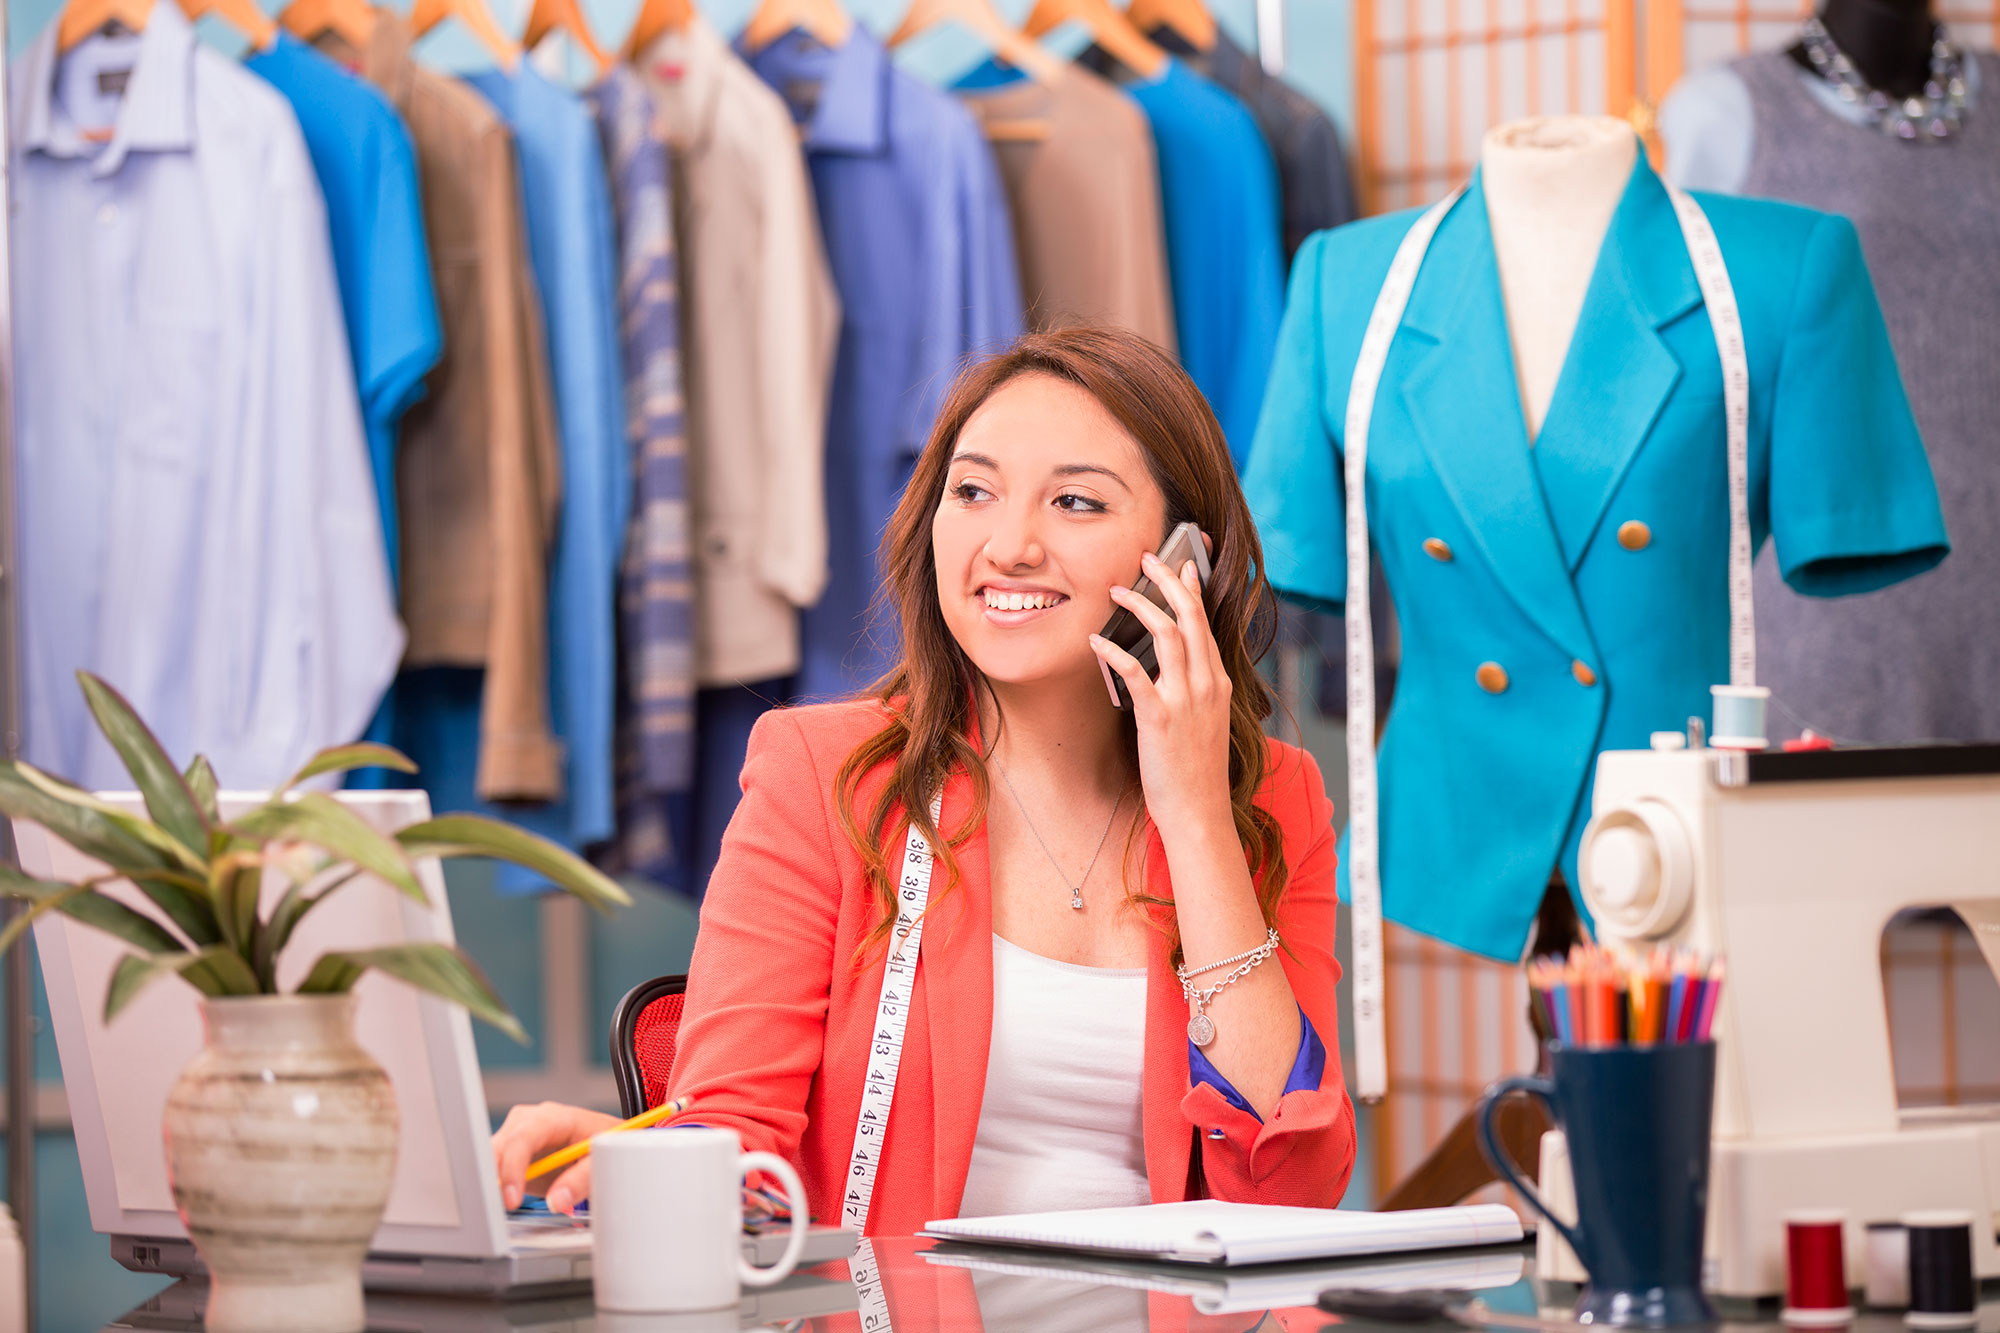 woman-tailor-fashion-small-business-mobile-phone-laptop